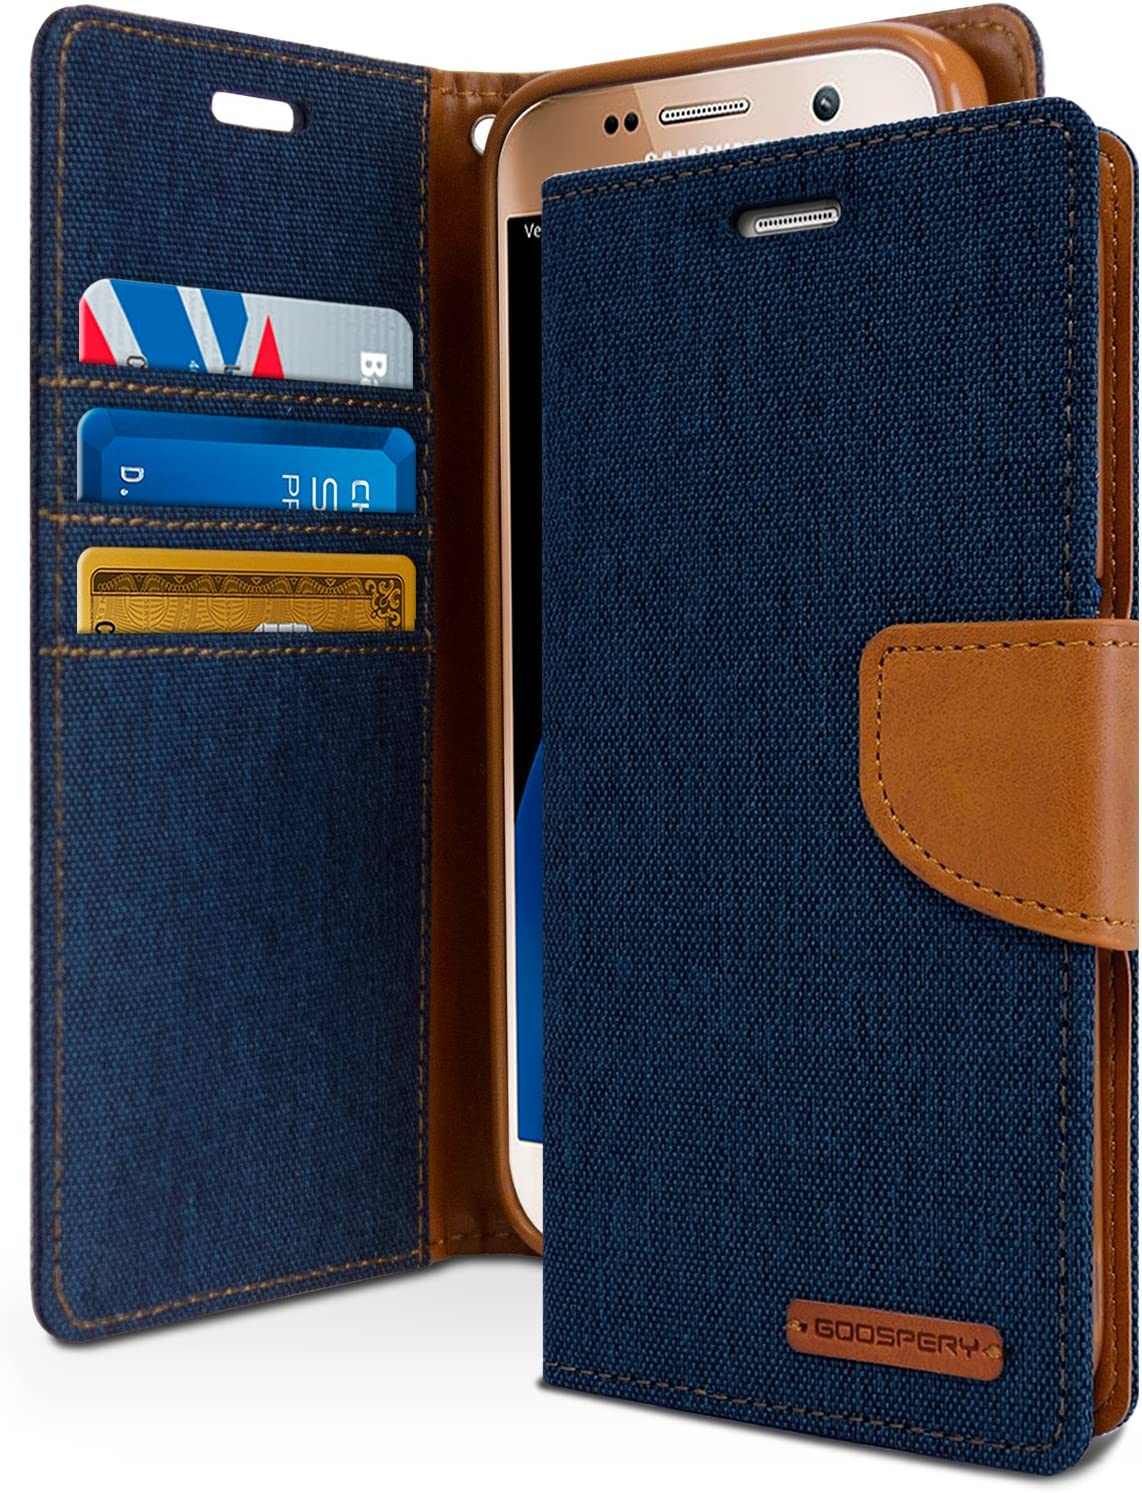 Goospery Canvas Wallet for Samsung Galaxy S7 Case (2016) Denim Stand Flip Cover (Navy) S7-CAN-NVY